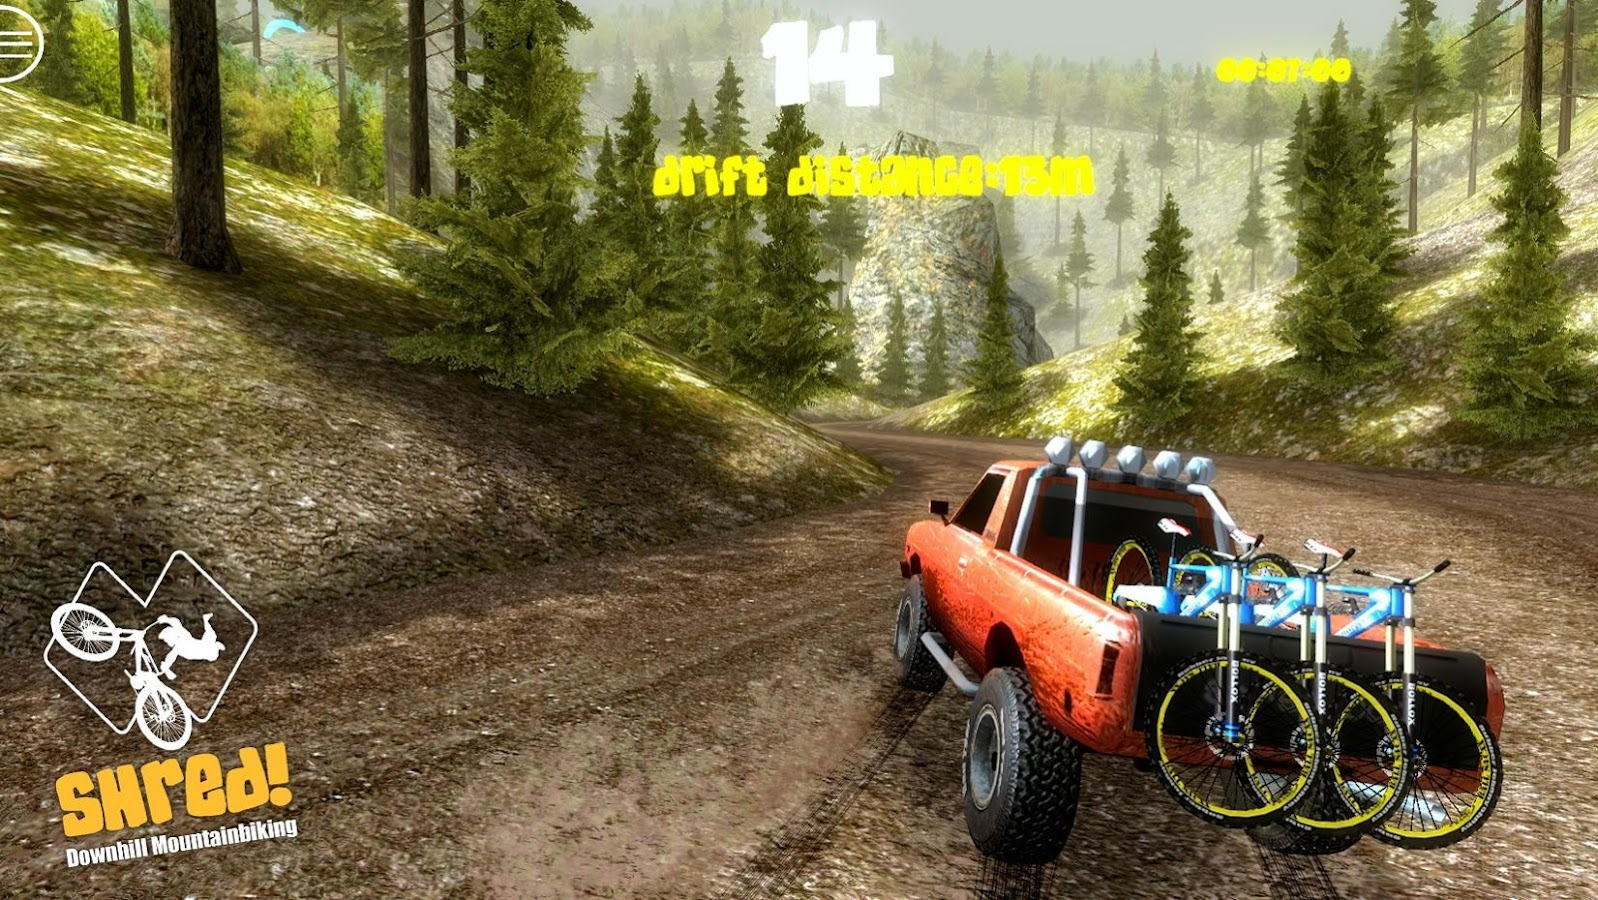 Downhill Bikes Game Downloads Mountain bike game that